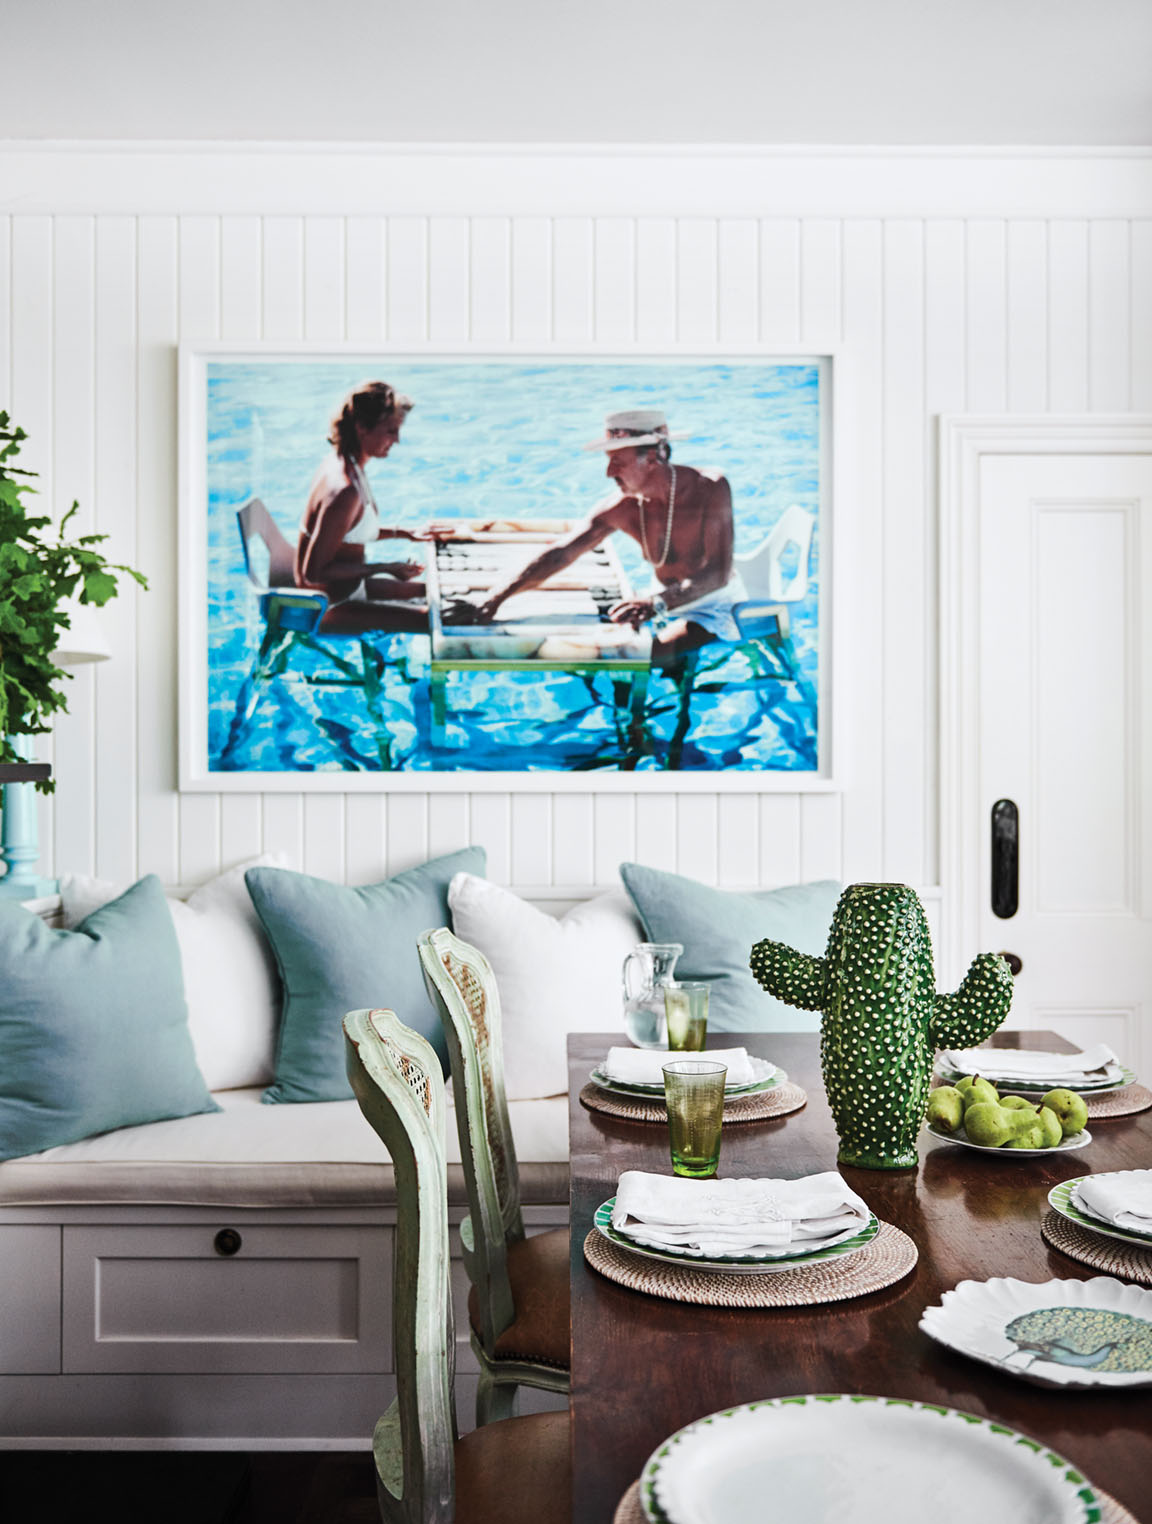 Above a banquette, the Slim Aarons' photograph features couple playing a board game in a pool